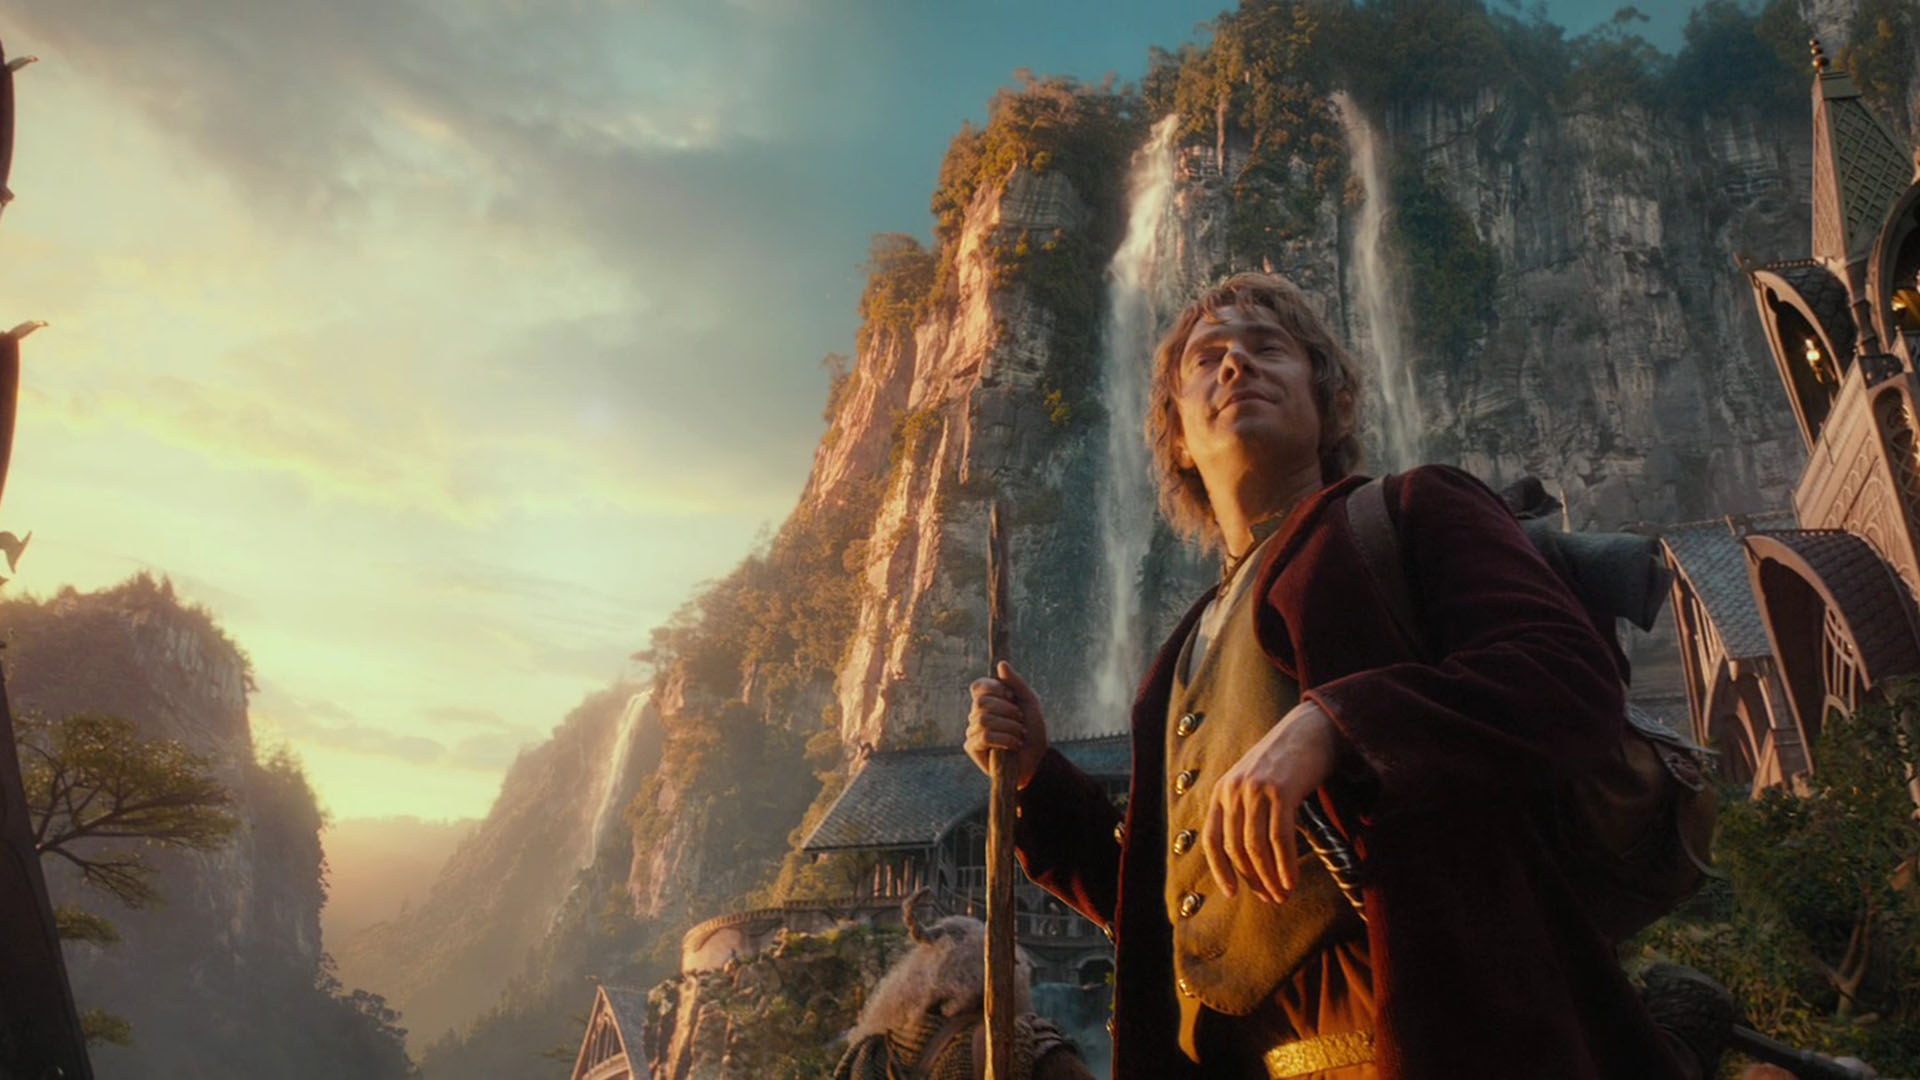 The Hobbit An Unexpected Journey Desktop Wallpapers for HD 1920x1080